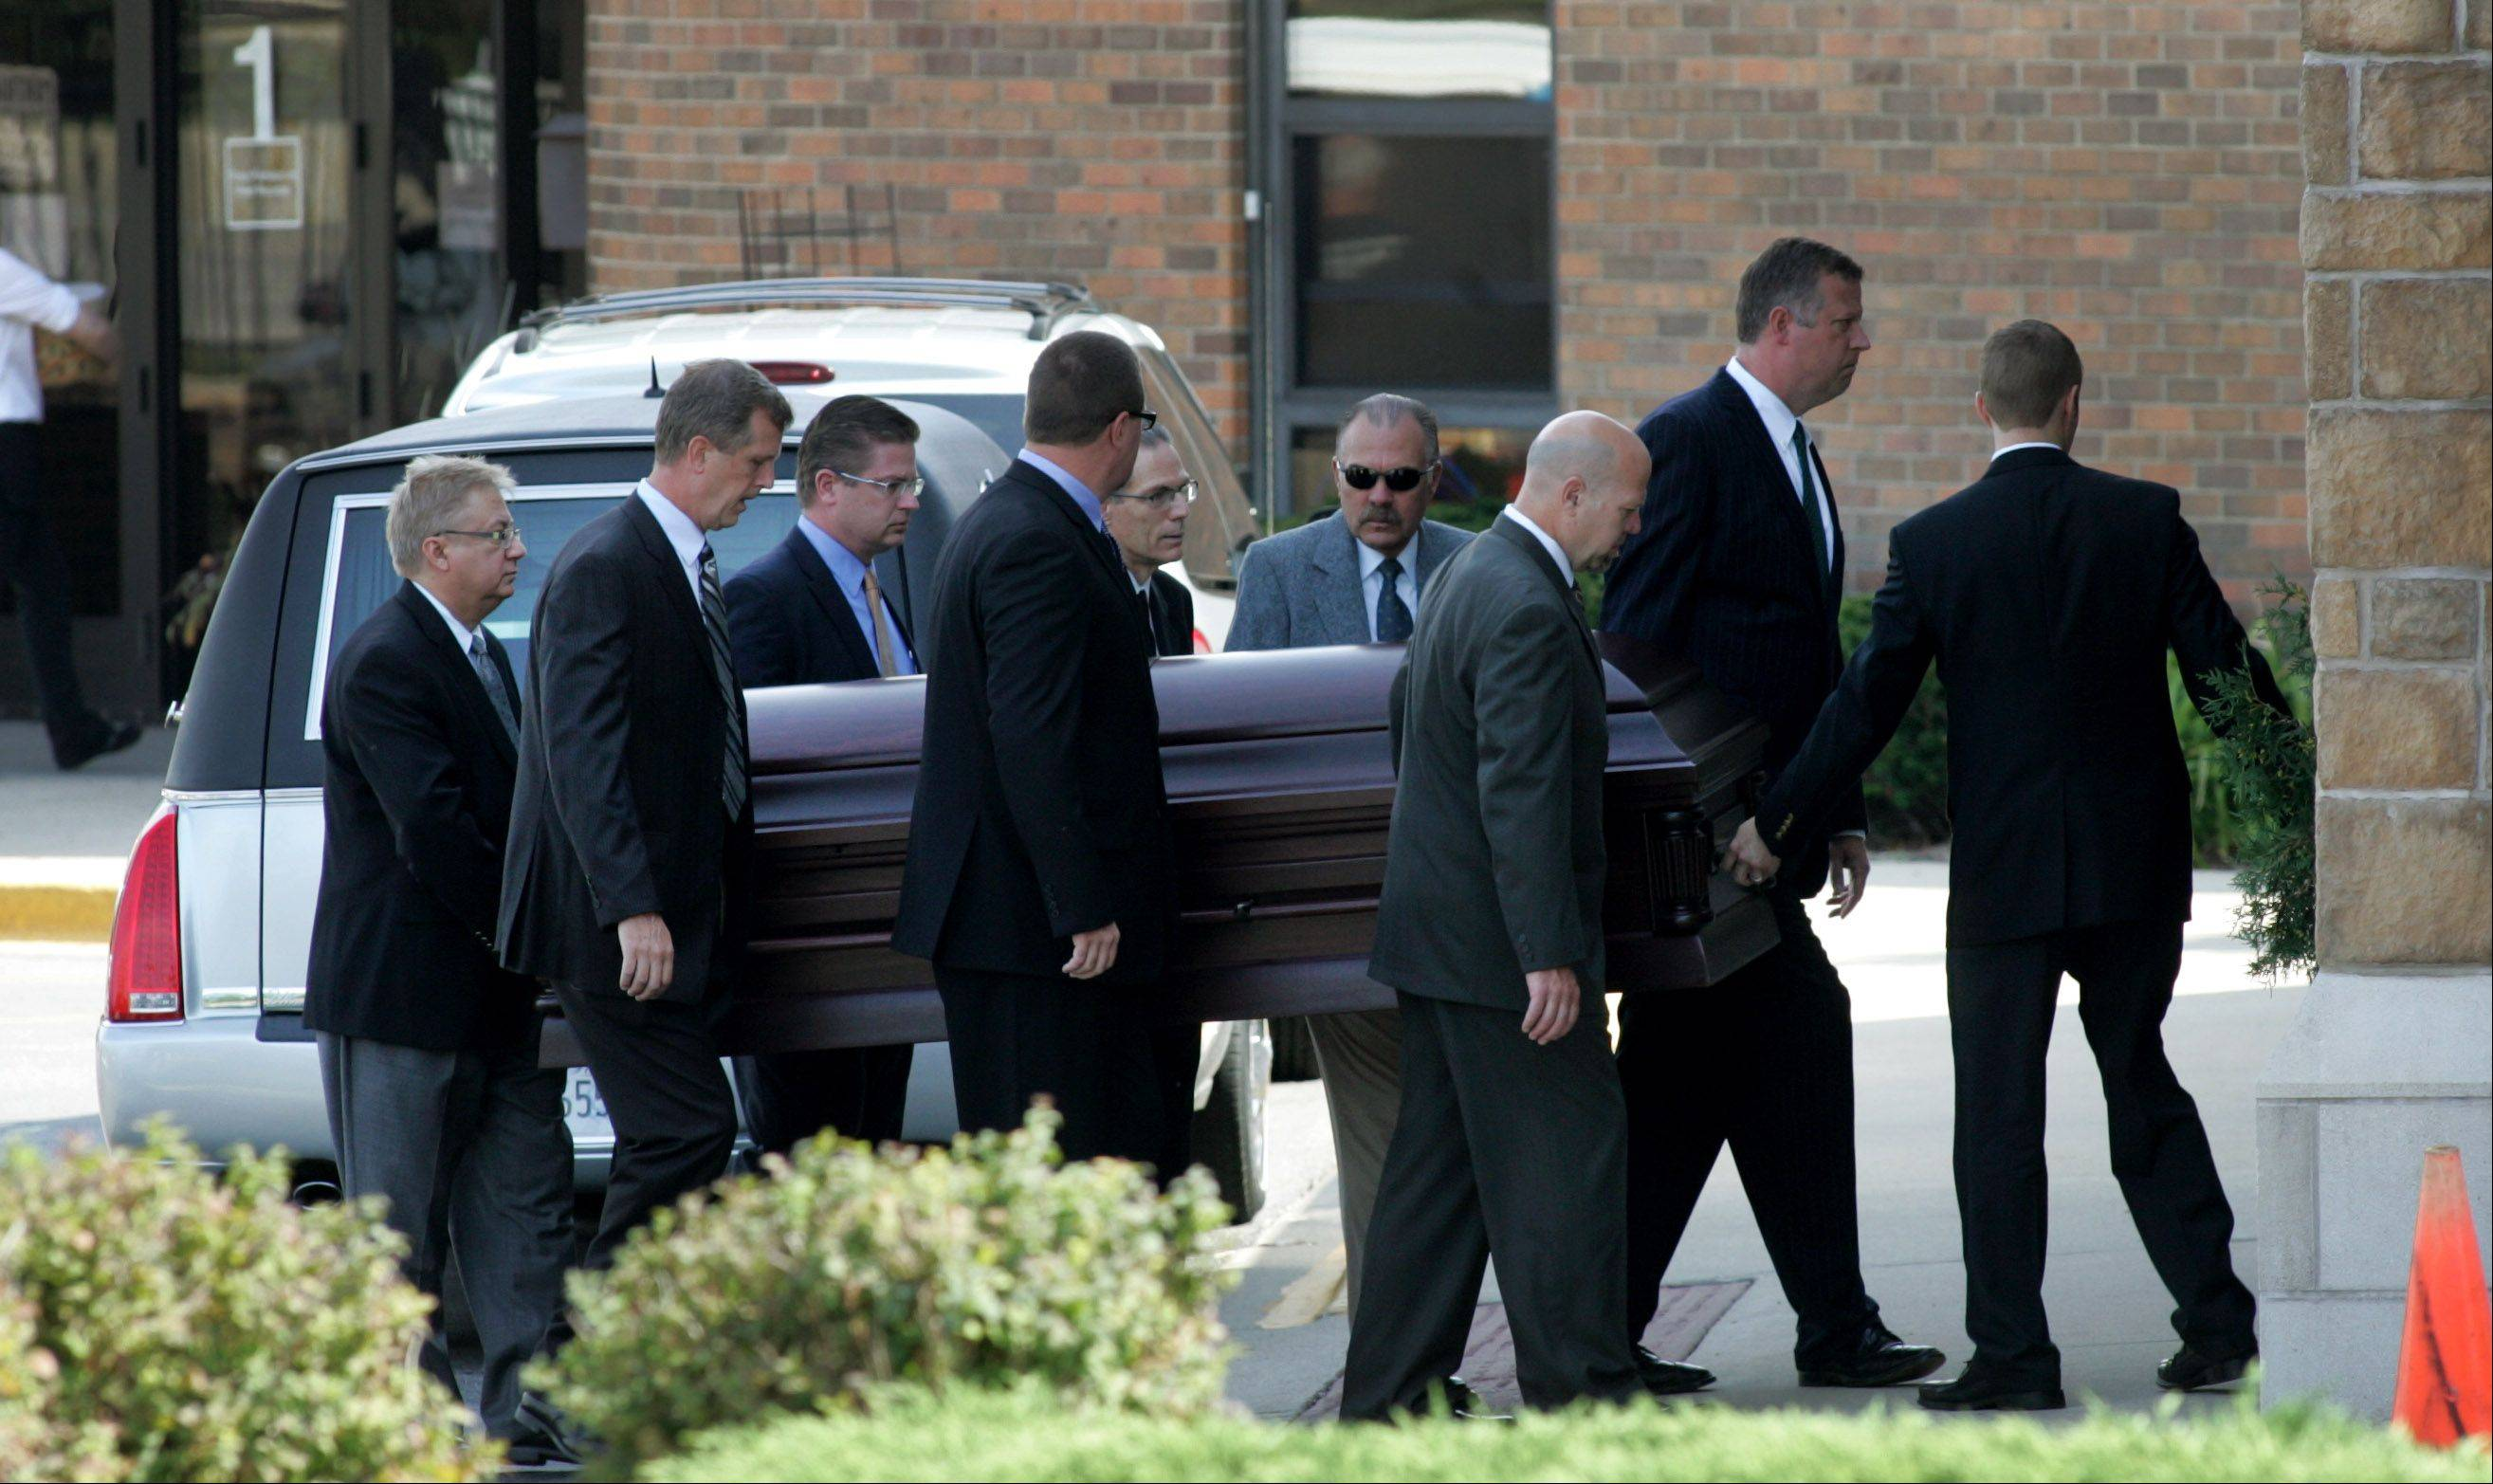 The casket of Megan Boken is carried into St. Michael Church for her funeral in Wheaton on Thursday.